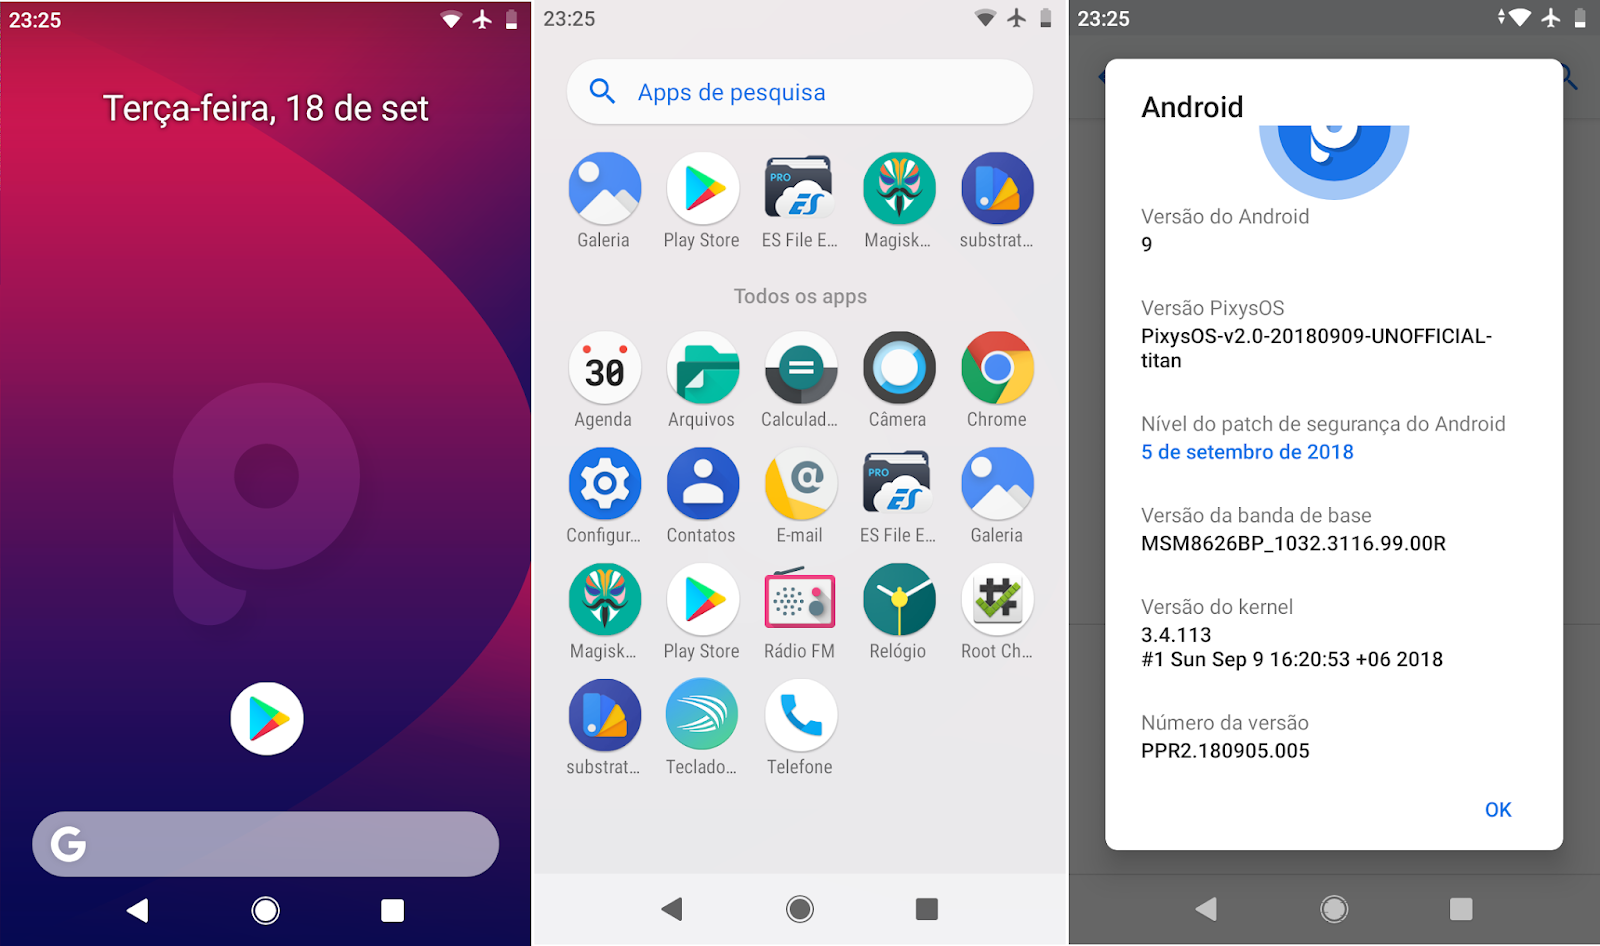 Projeto Moto G: ROM PixysOS [Android 9 0] [Unofficial] [Titan]